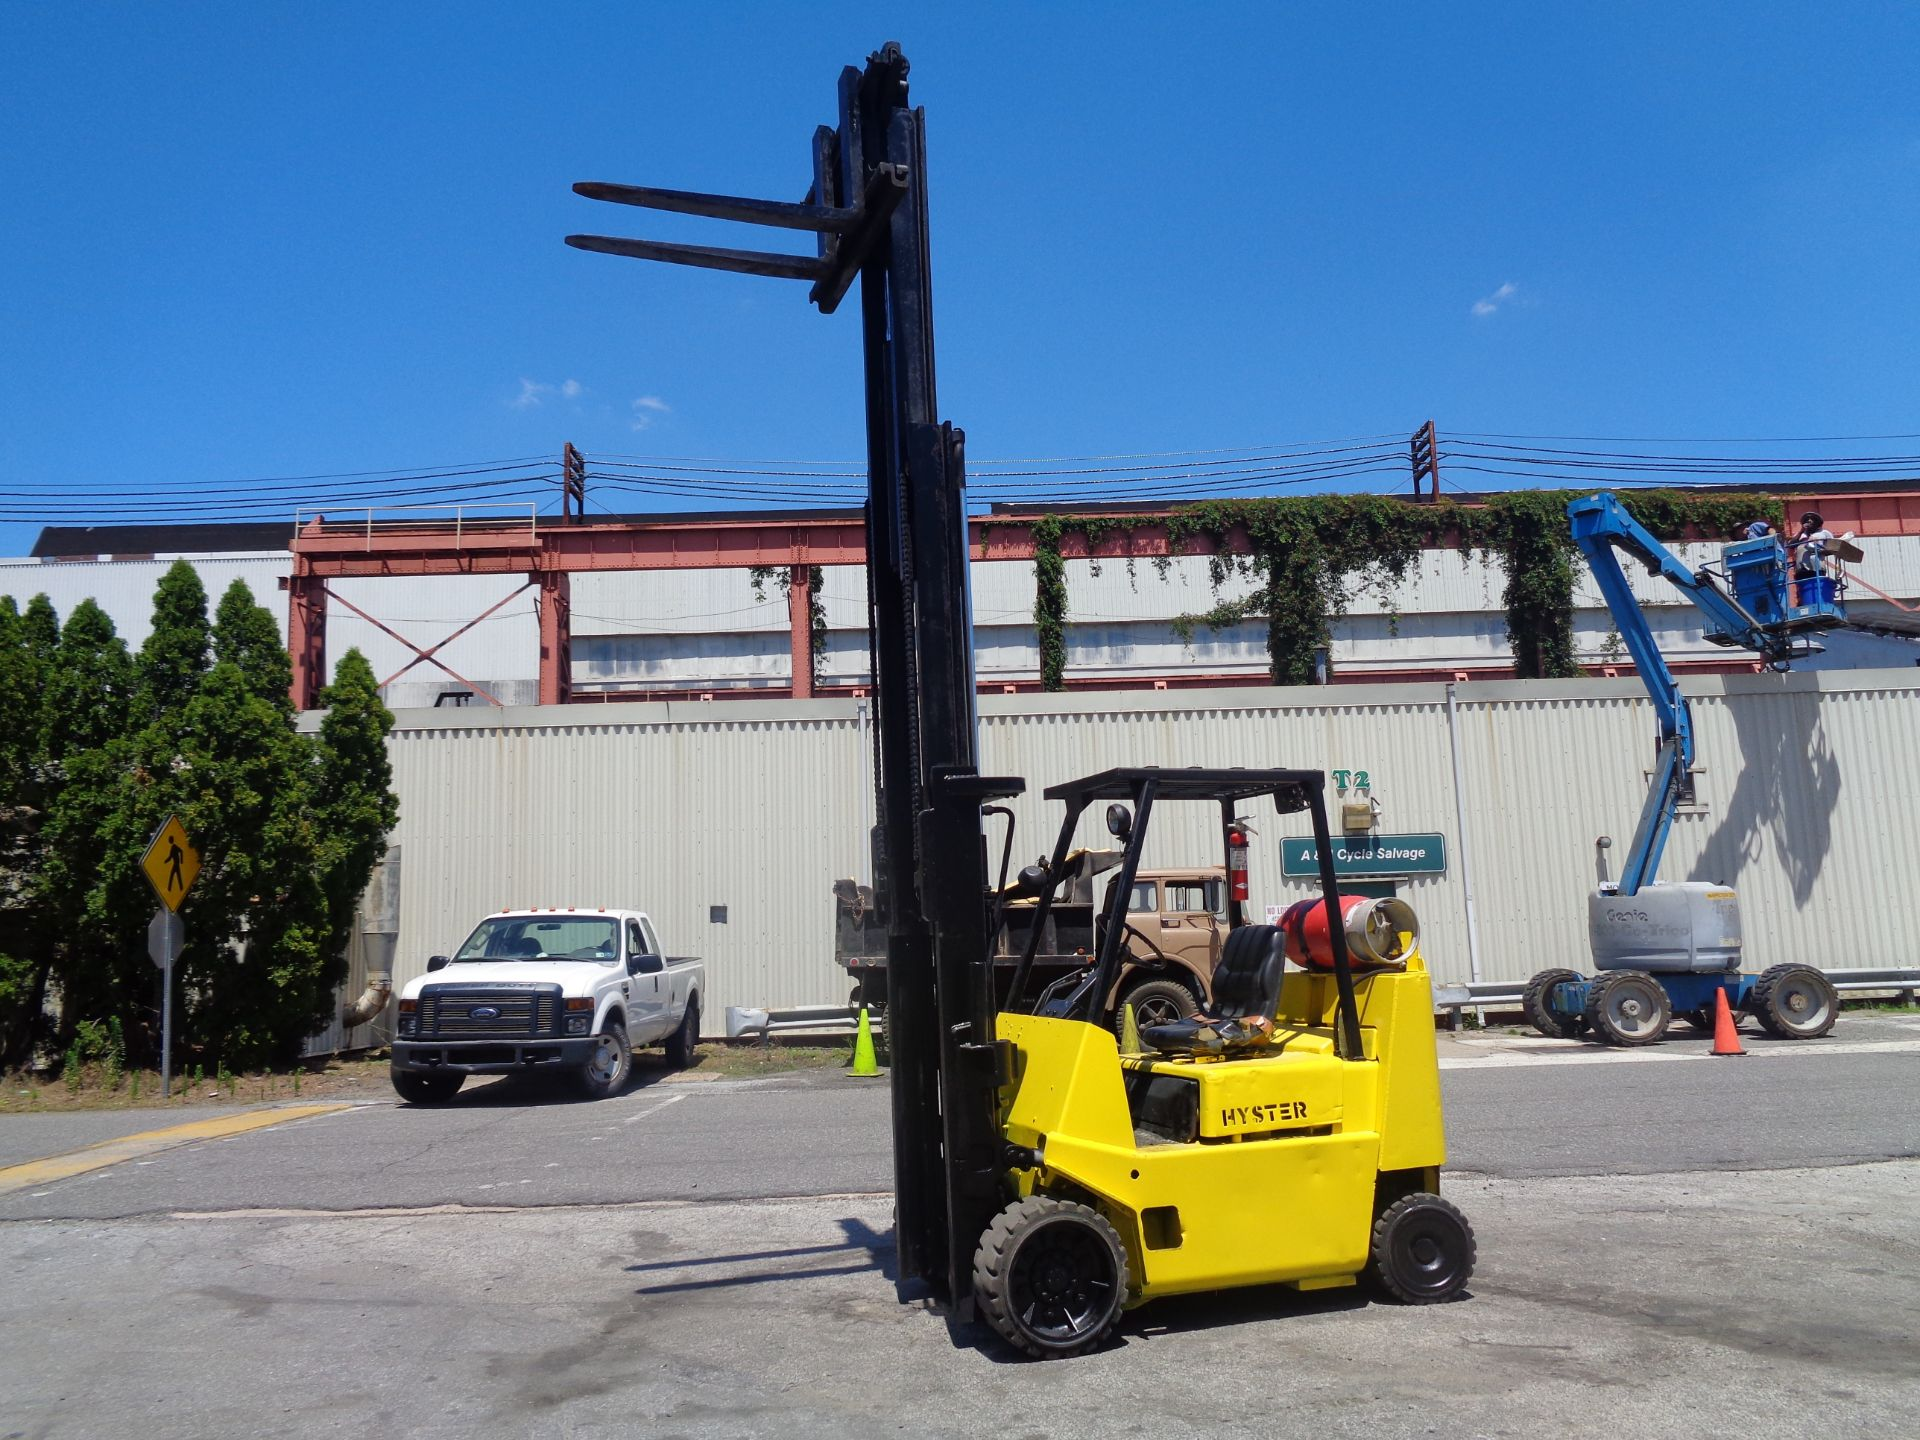 Hyster S80XL 8,000 lbs Forklift - Image 6 of 13